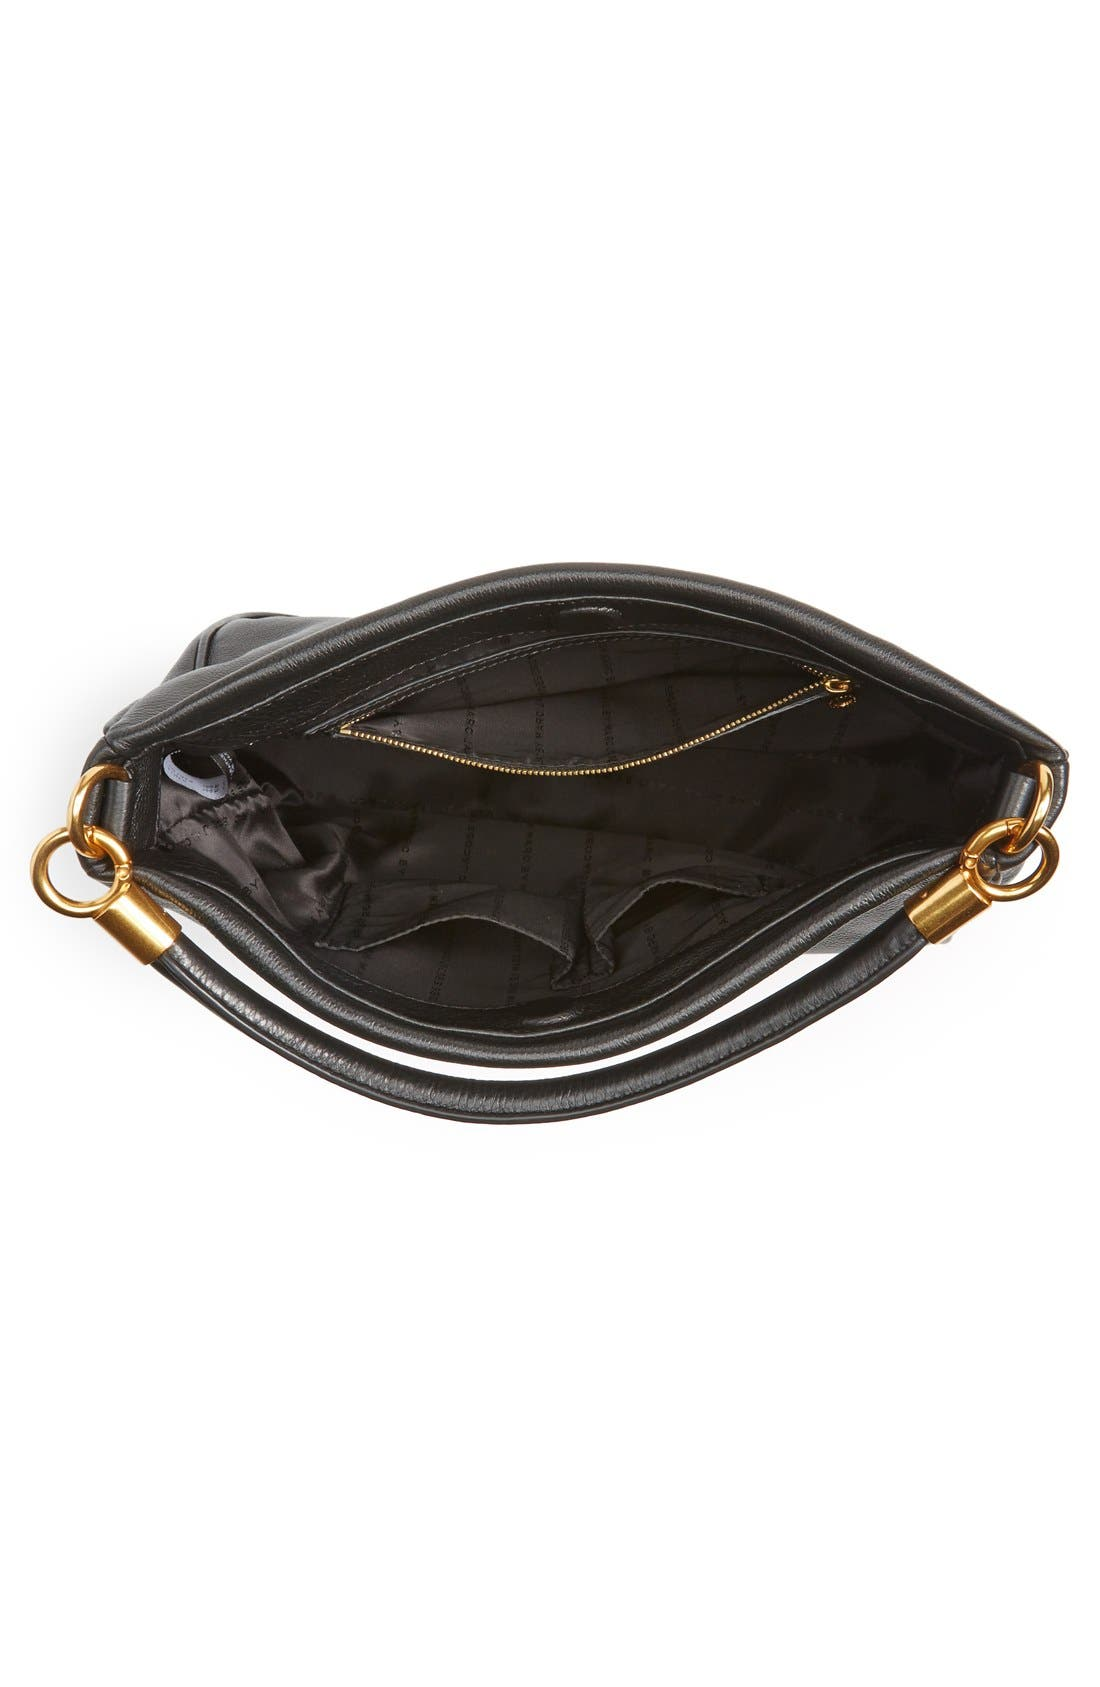 MARC BY MARC JACOBS 'Too Hot to Handle' Hobo,                             Alternate thumbnail 5, color,                             001